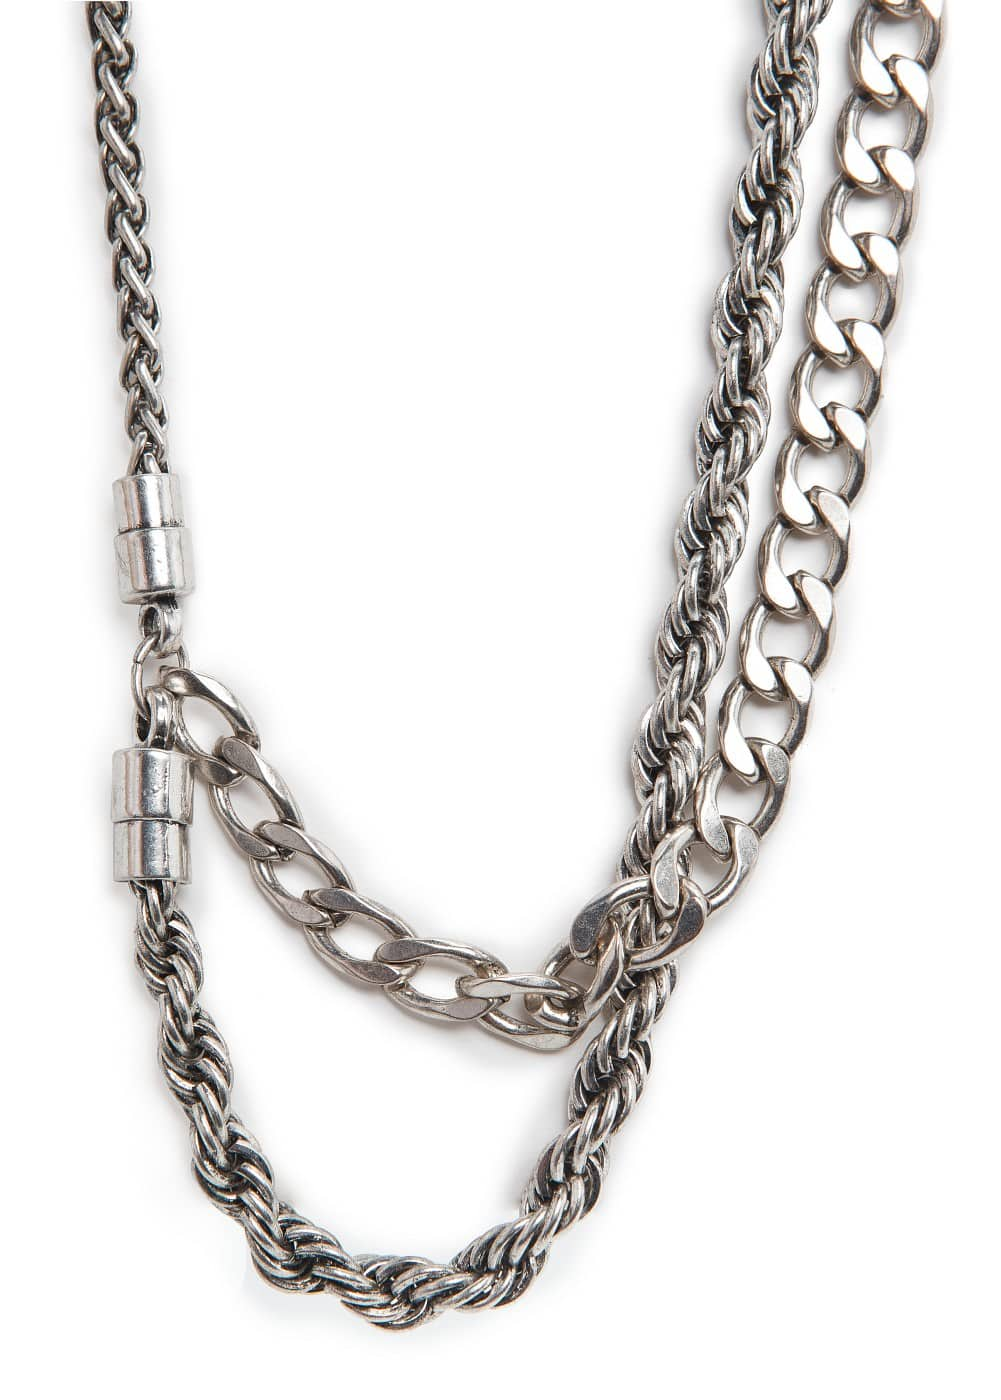 Glam grunge chain necklace